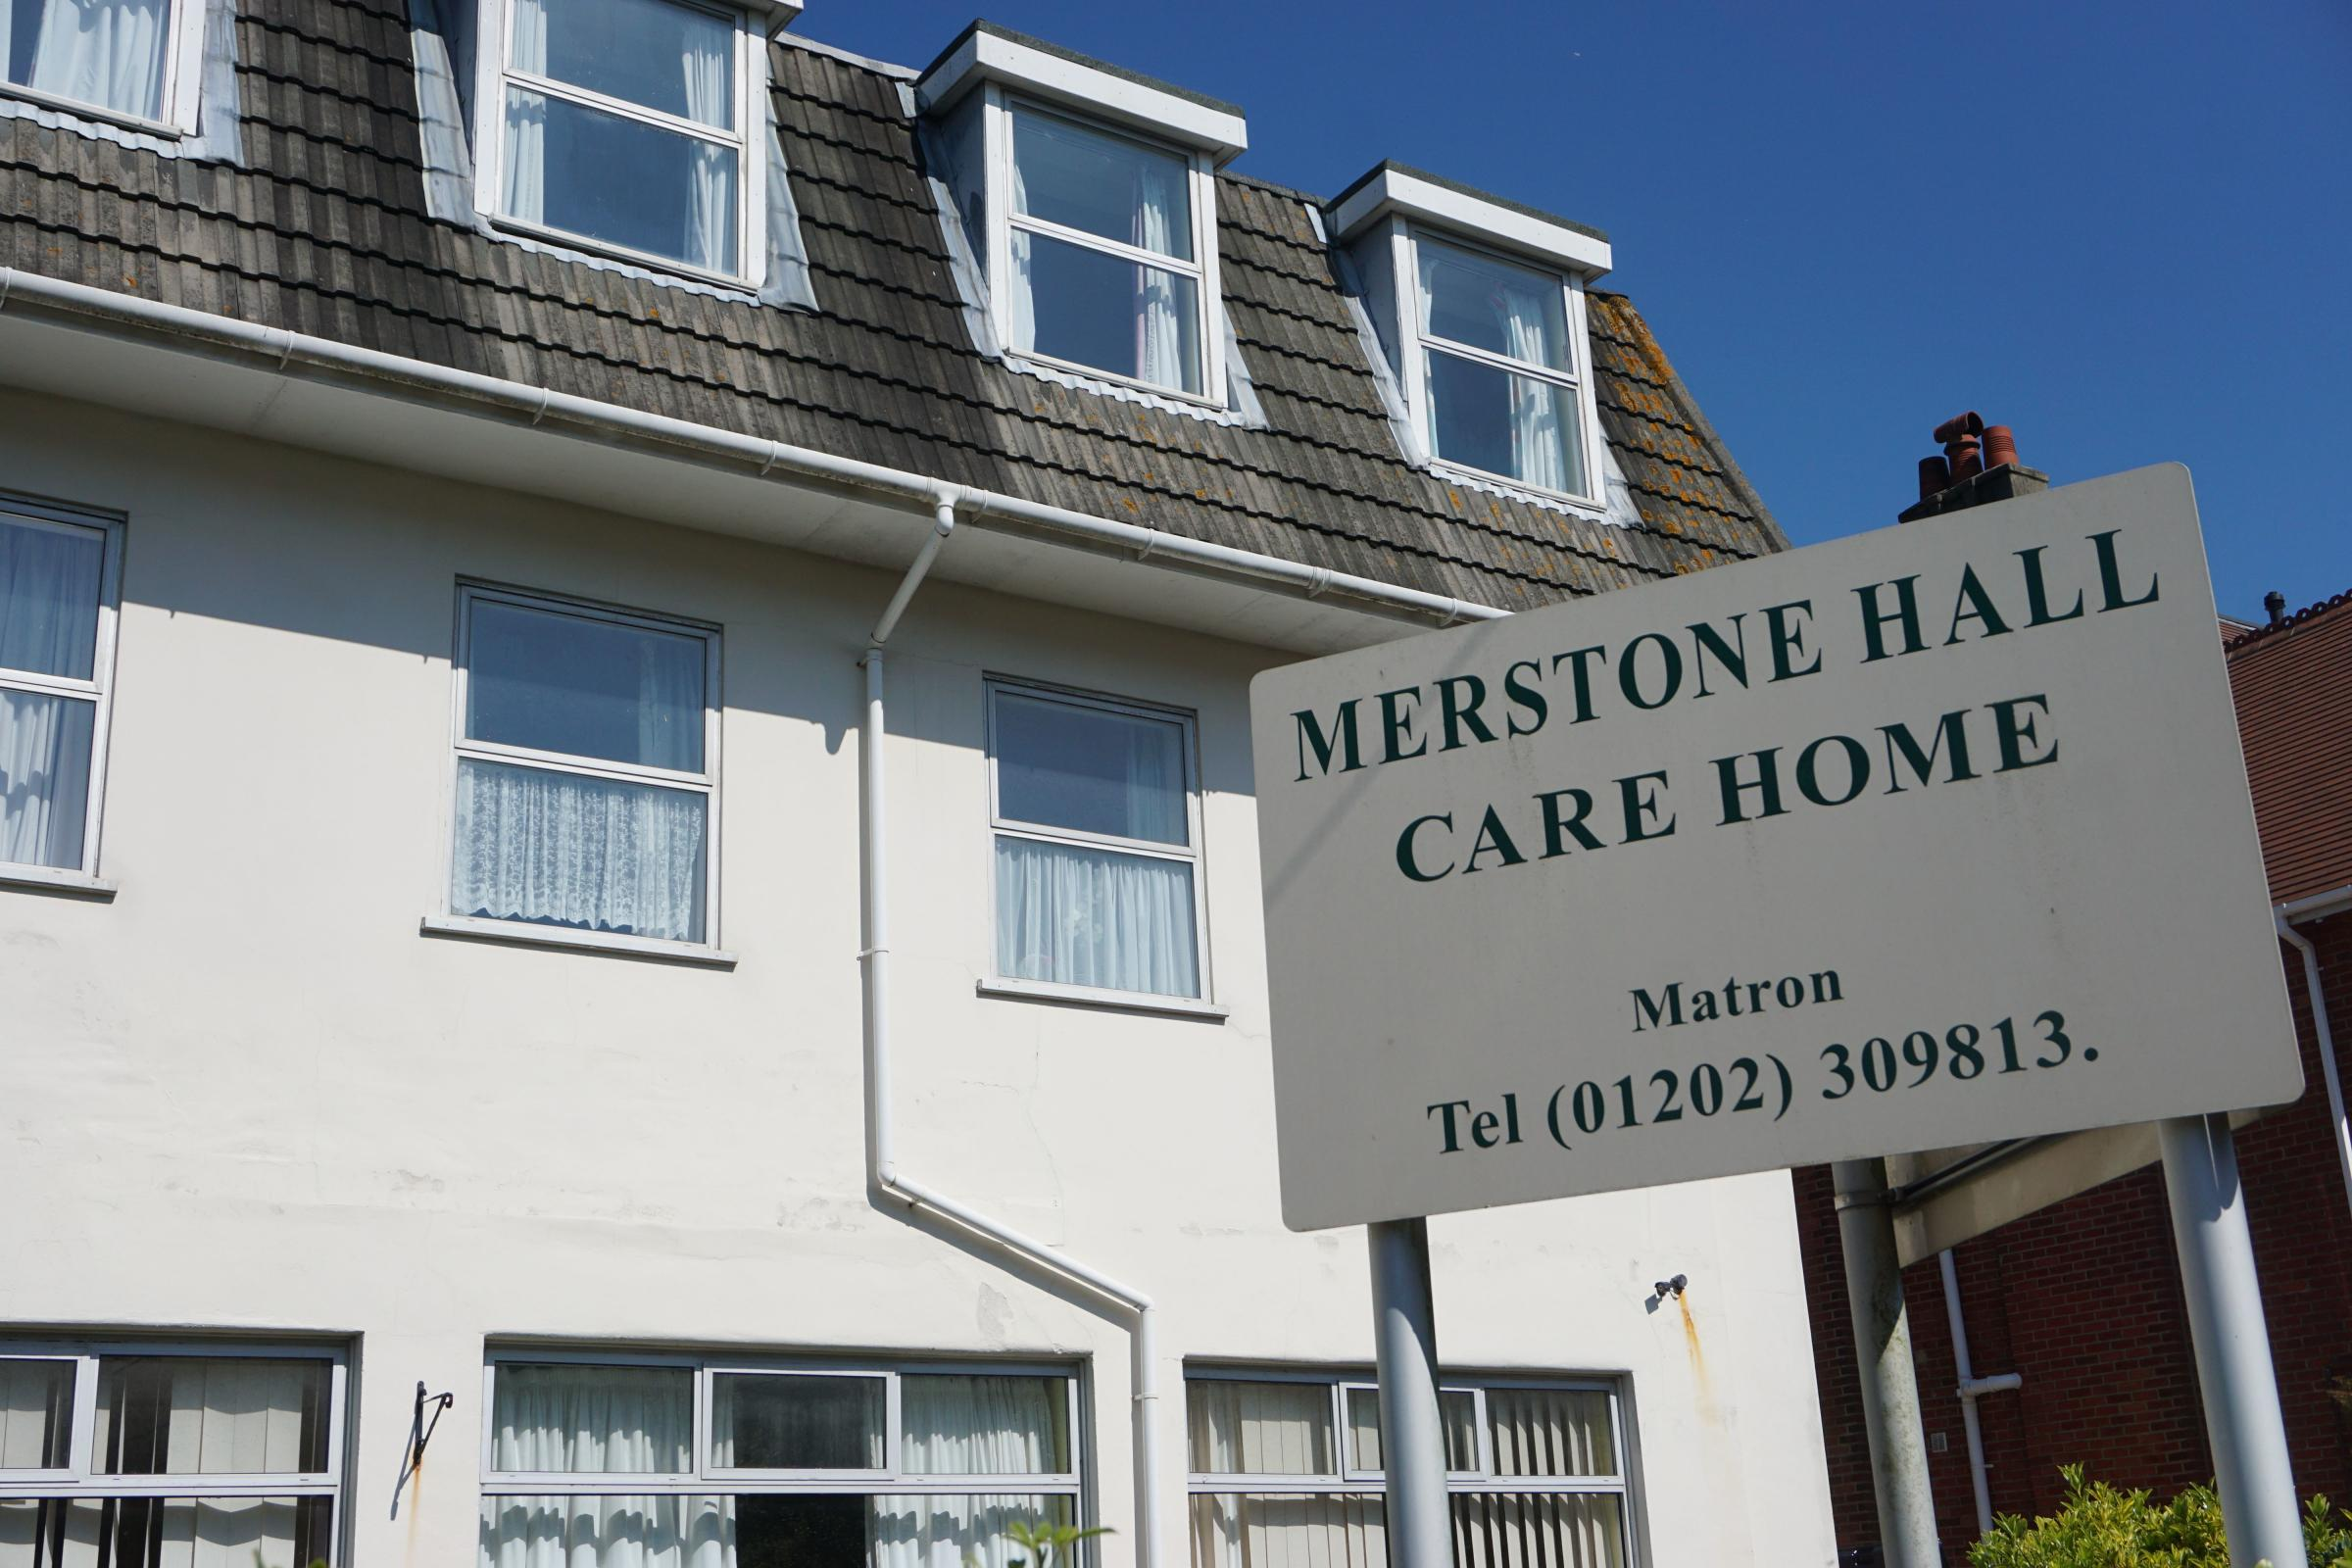 The former Merstone Hall care home in Boscombe